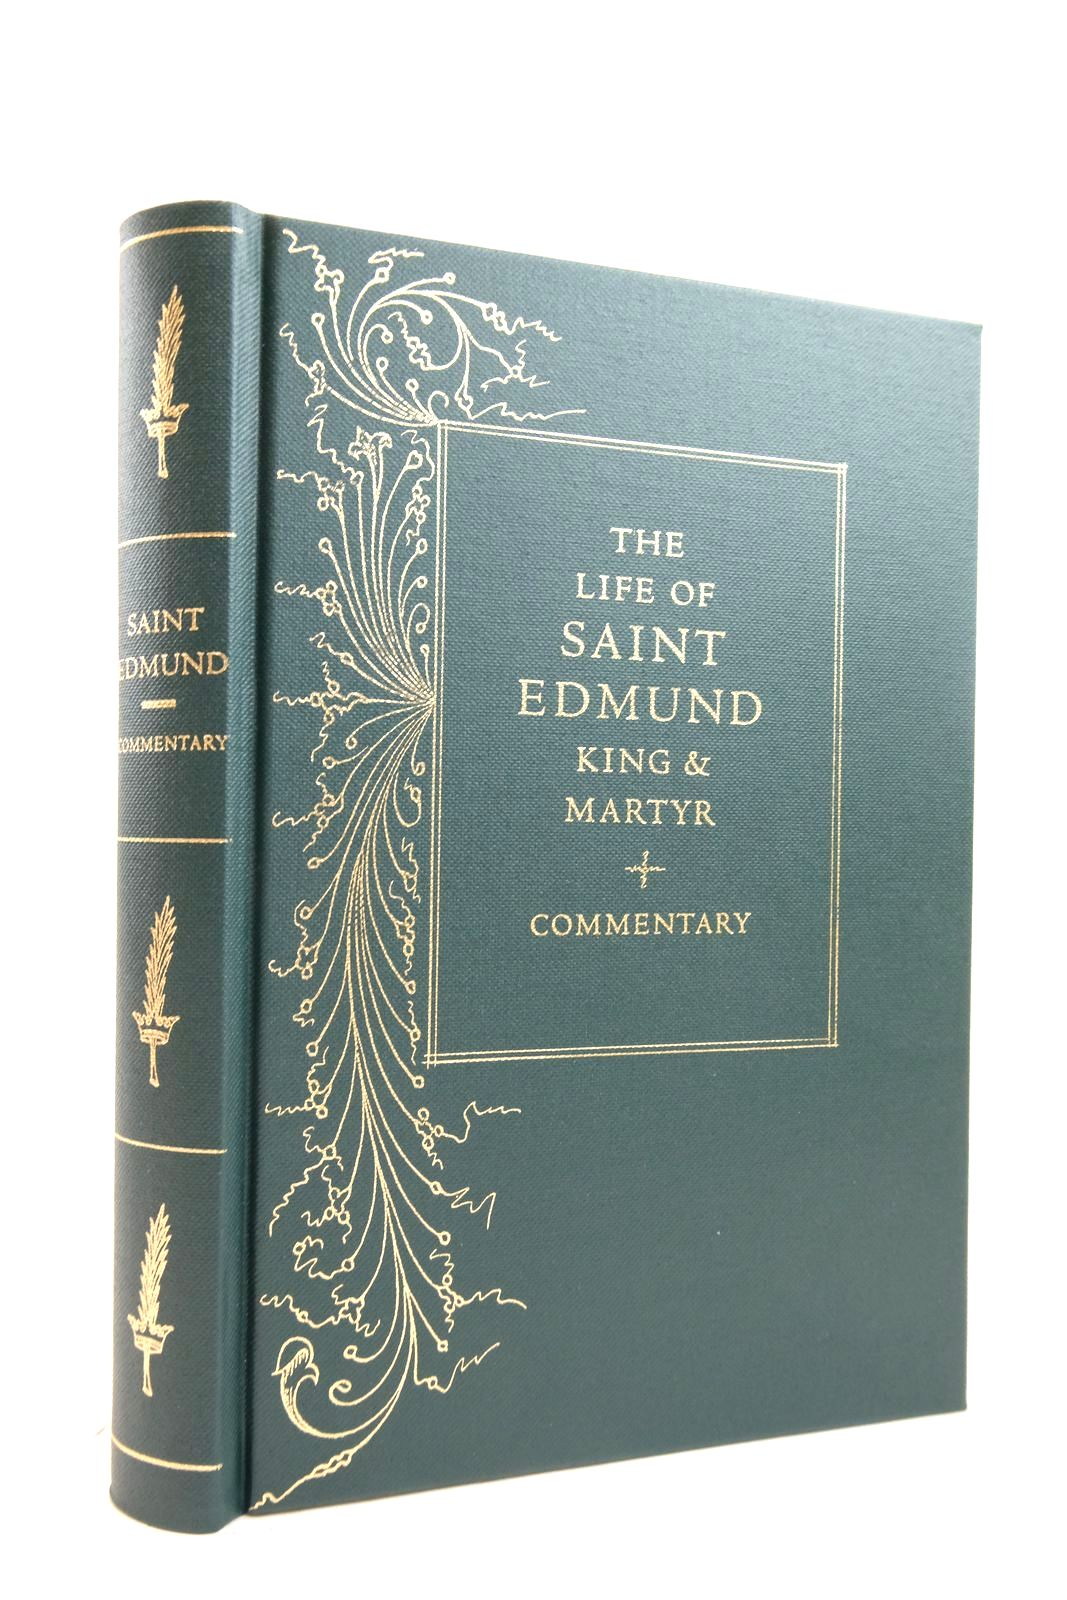 Photo of THE LIFE OF SAINT EDMUND KING & MARTYR written by Lydgate, John Edwards, A.S.G. published by Folio Society (STOCK CODE: 2134708)  for sale by Stella & Rose's Books